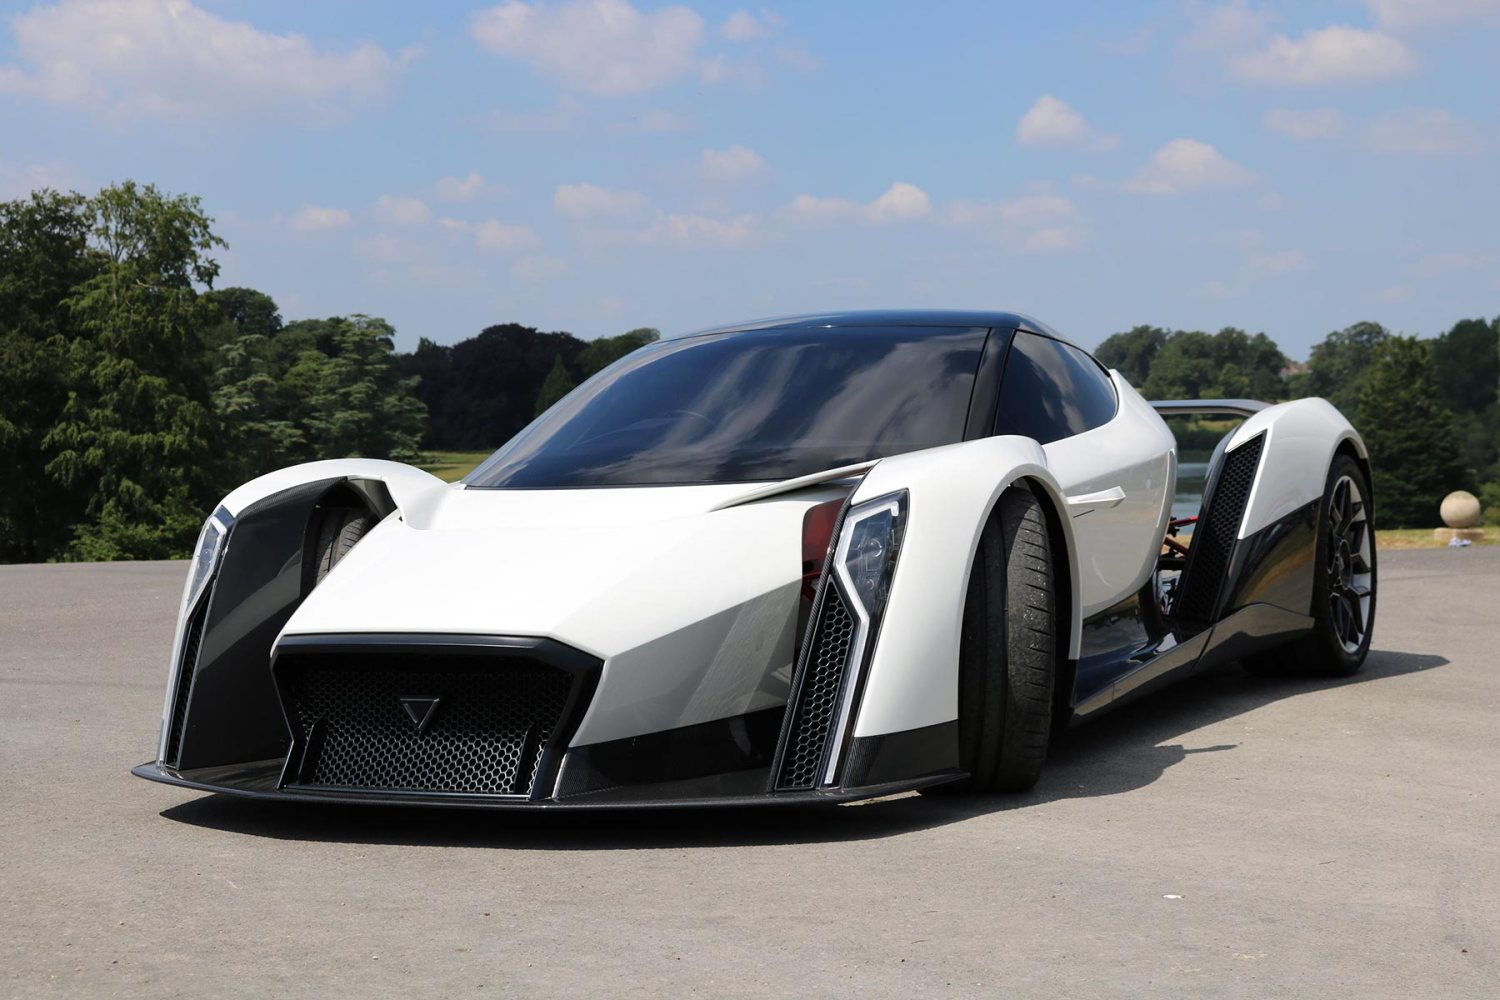 Electric Dendrobium D-1 will be built in Britain